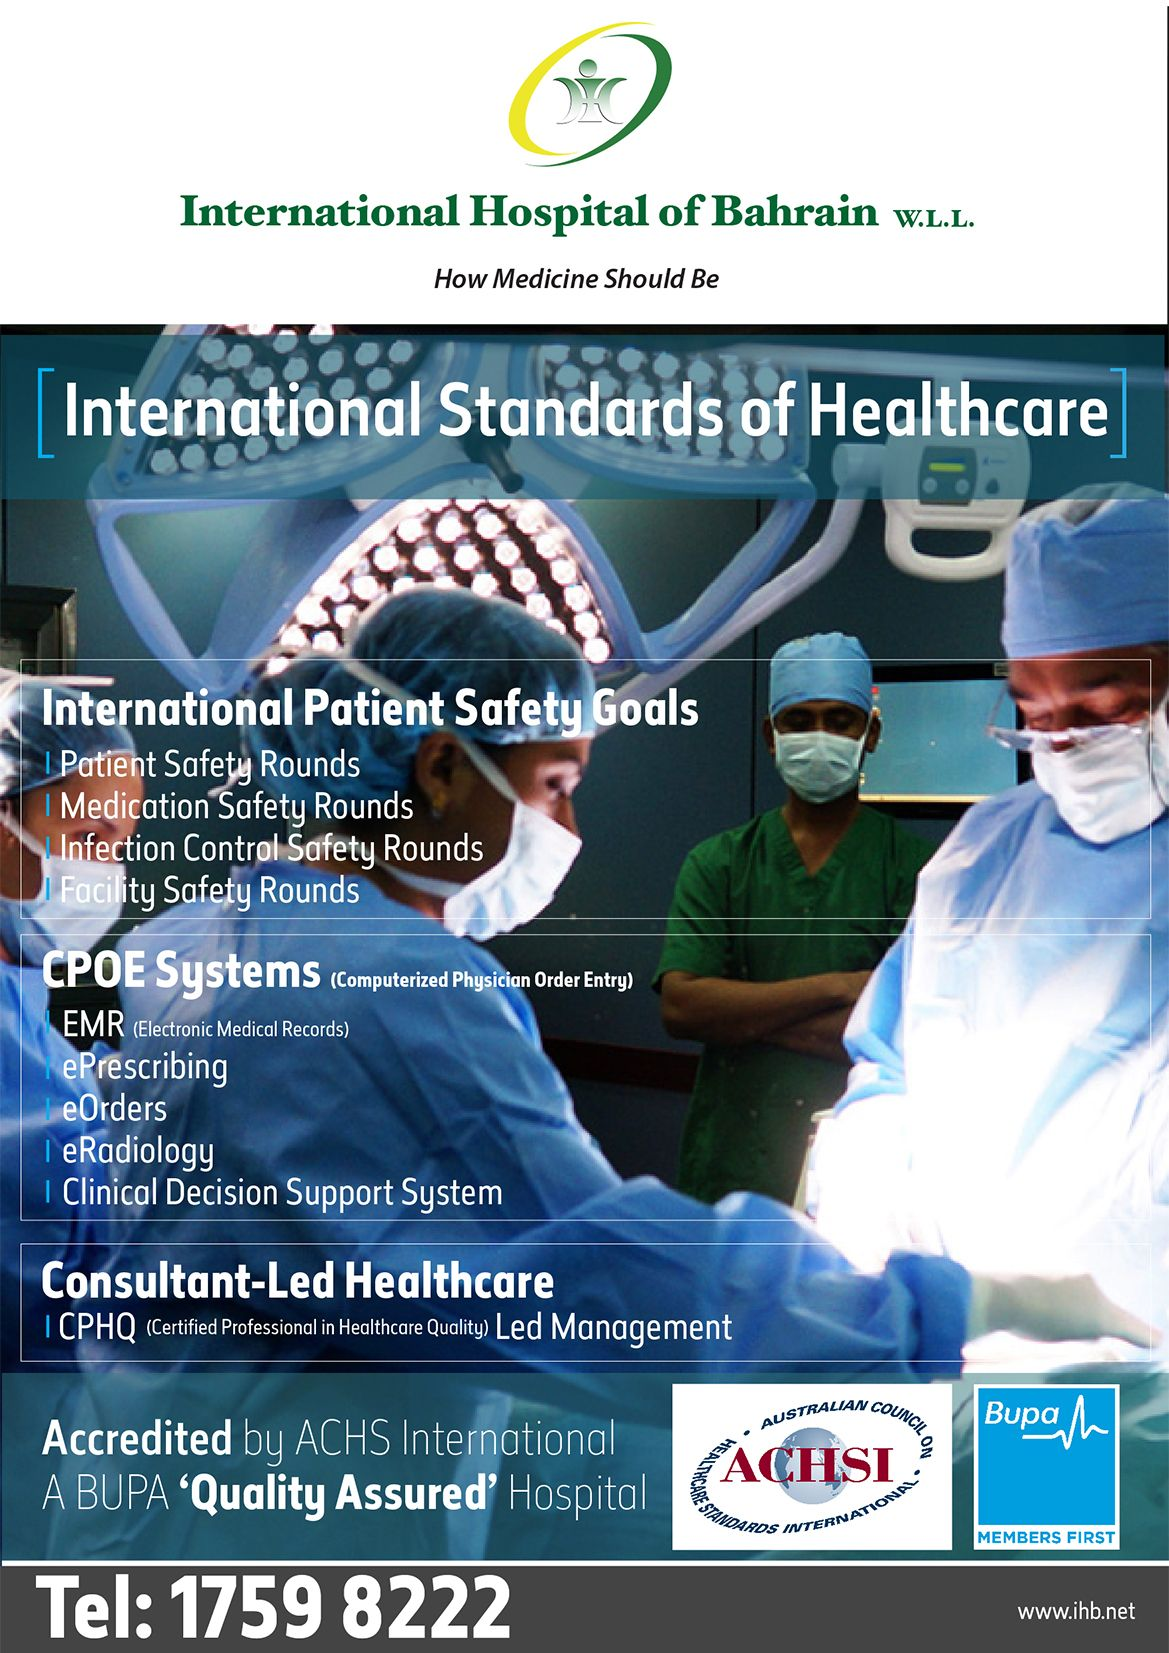 International Standard Healthcare for the community only at the International Hospital of Bahrain.   For more inquiries, call 1759 8222 or email health@ihb.net